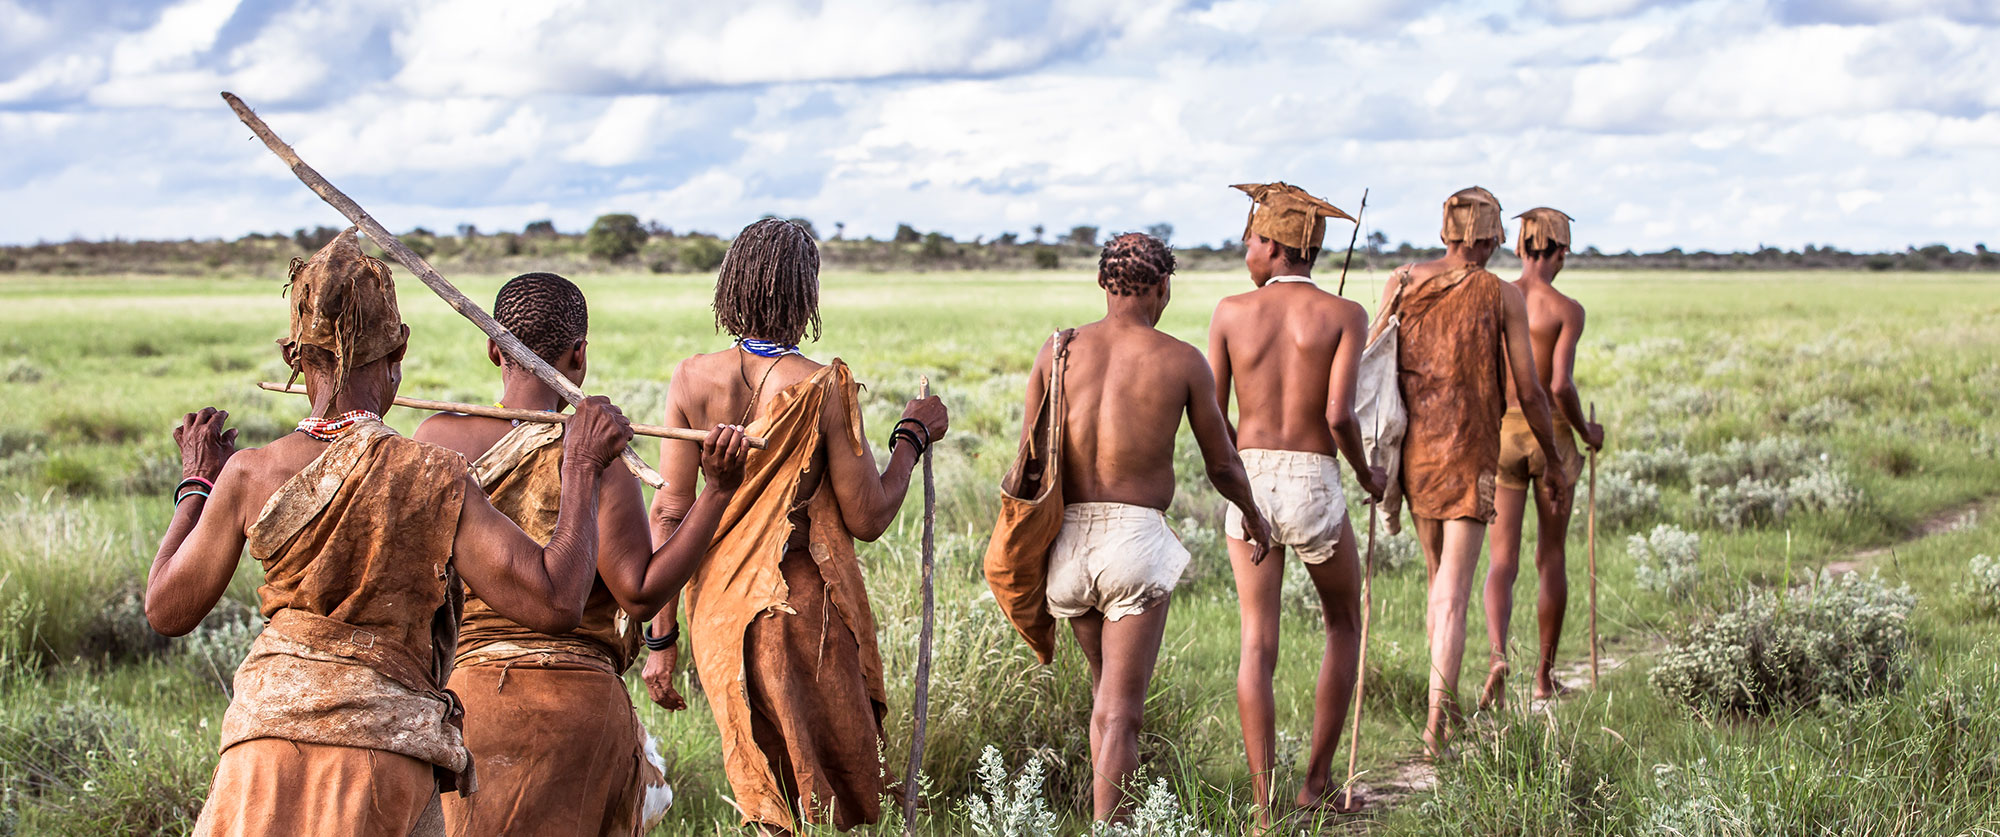 San Bushmen tribe members at Kalahari Plains Camp, Botswana